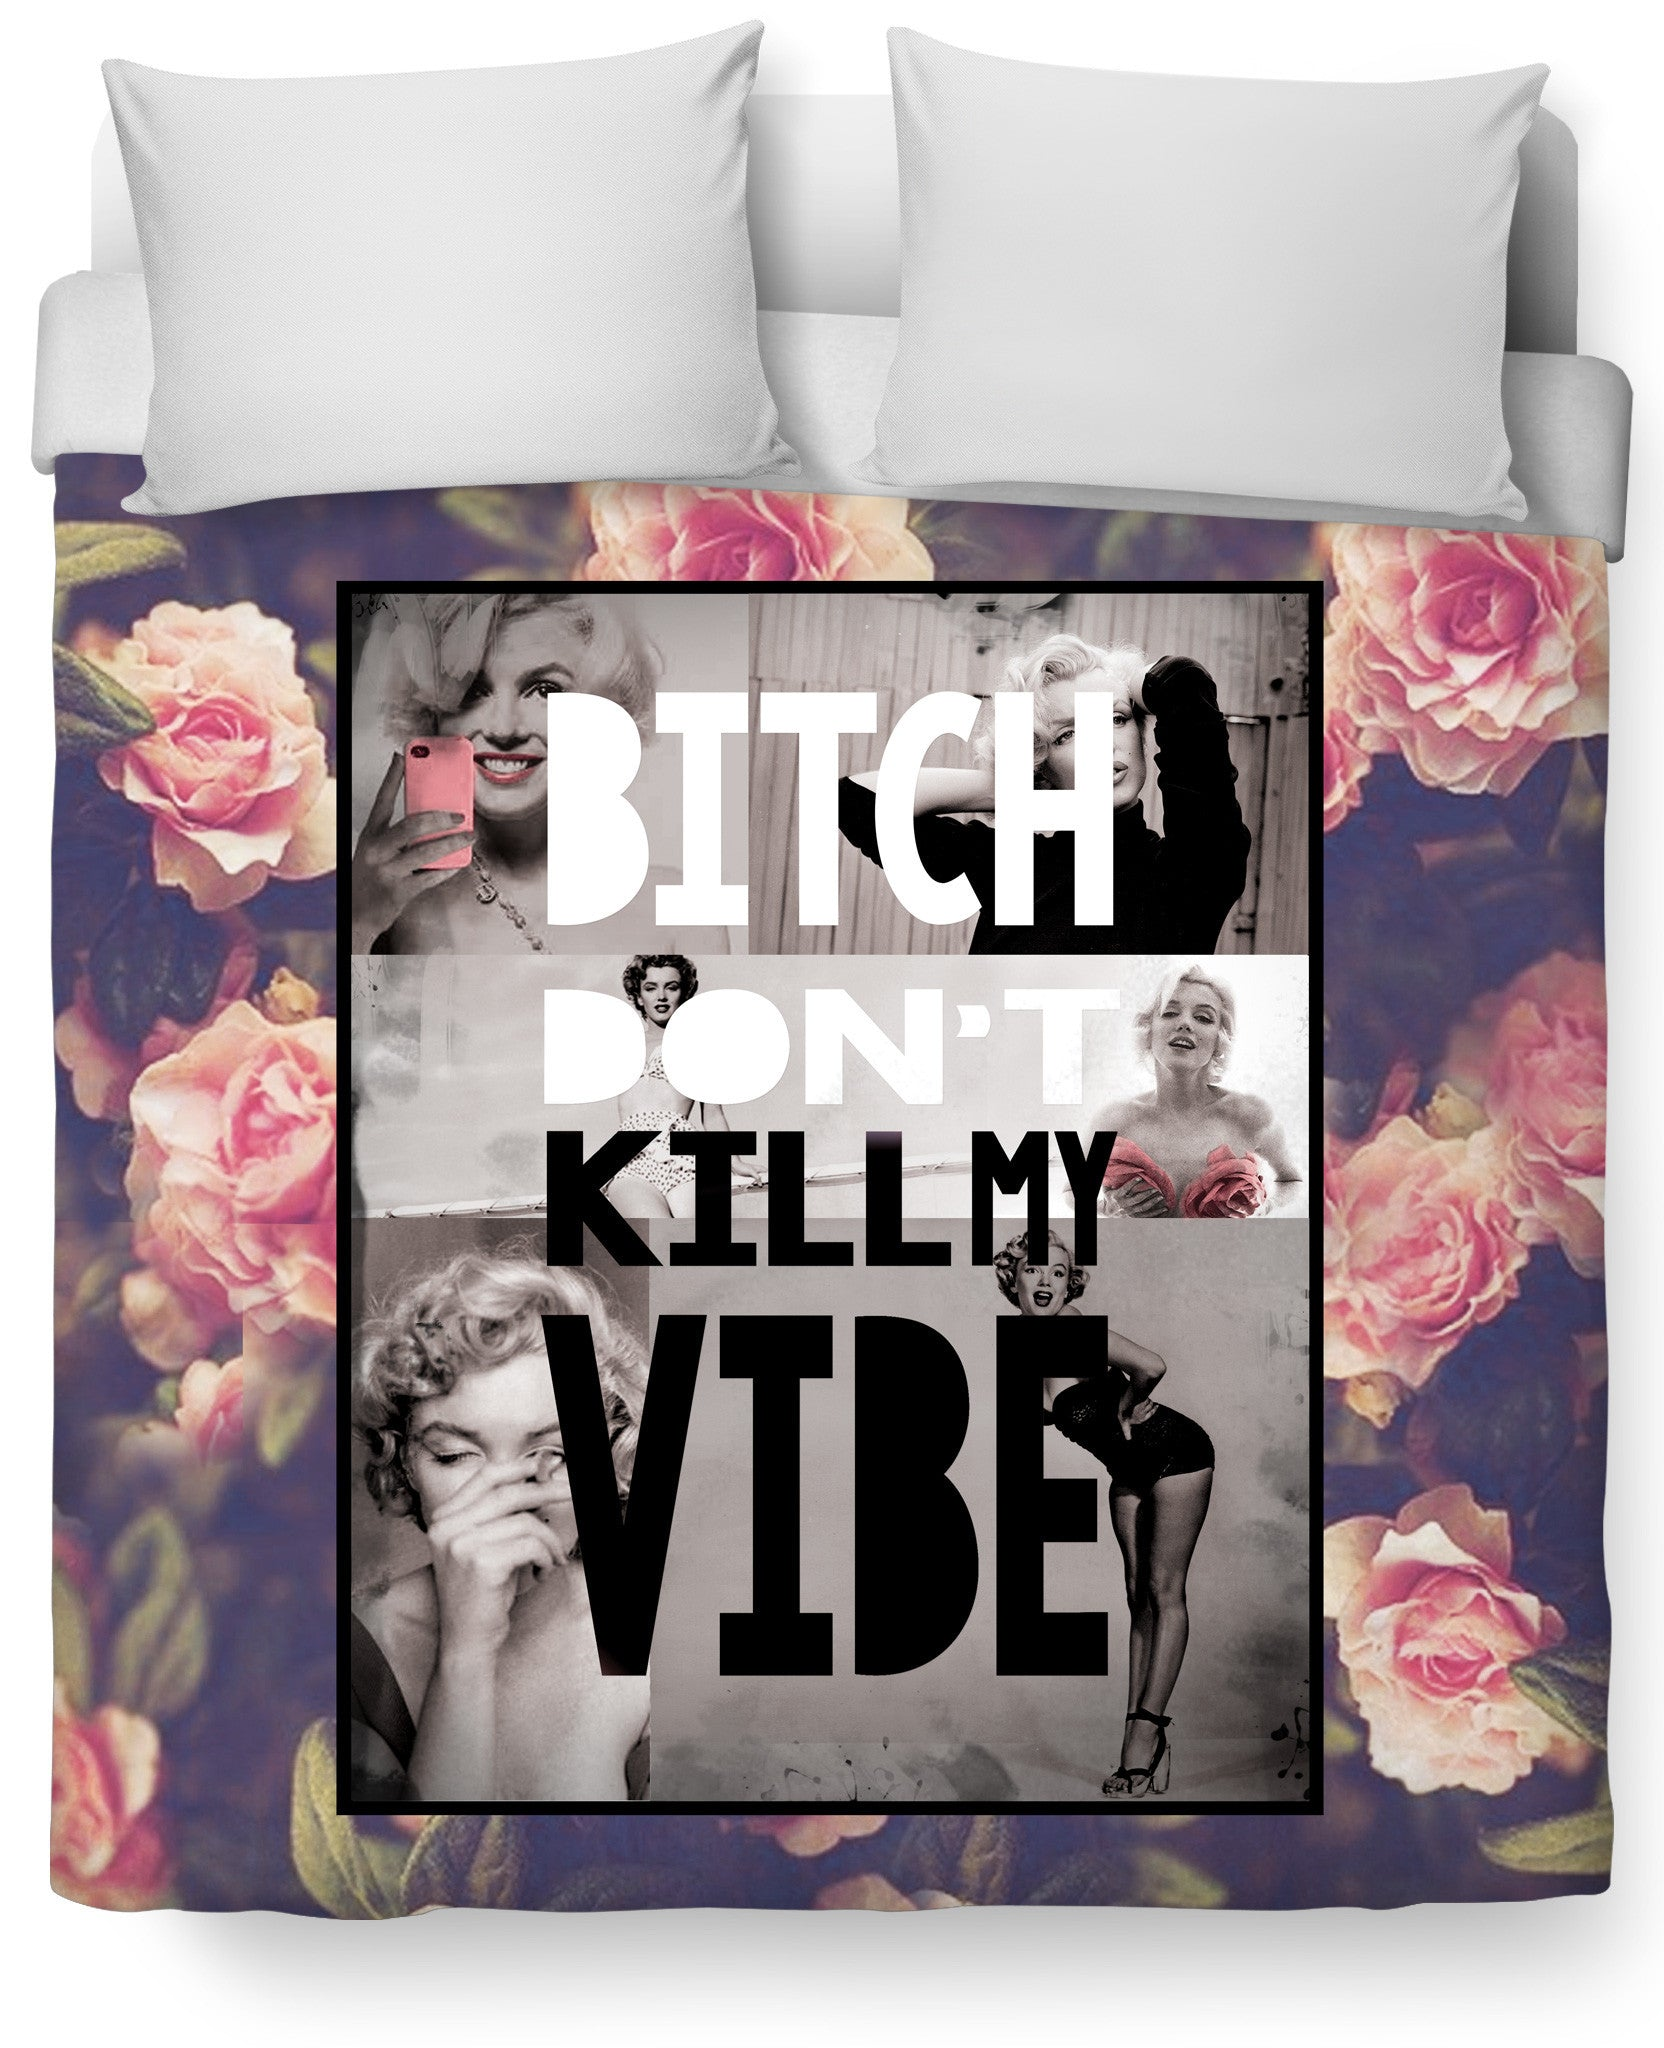 Bitch Don't Kill My Vibe Duvet Cover